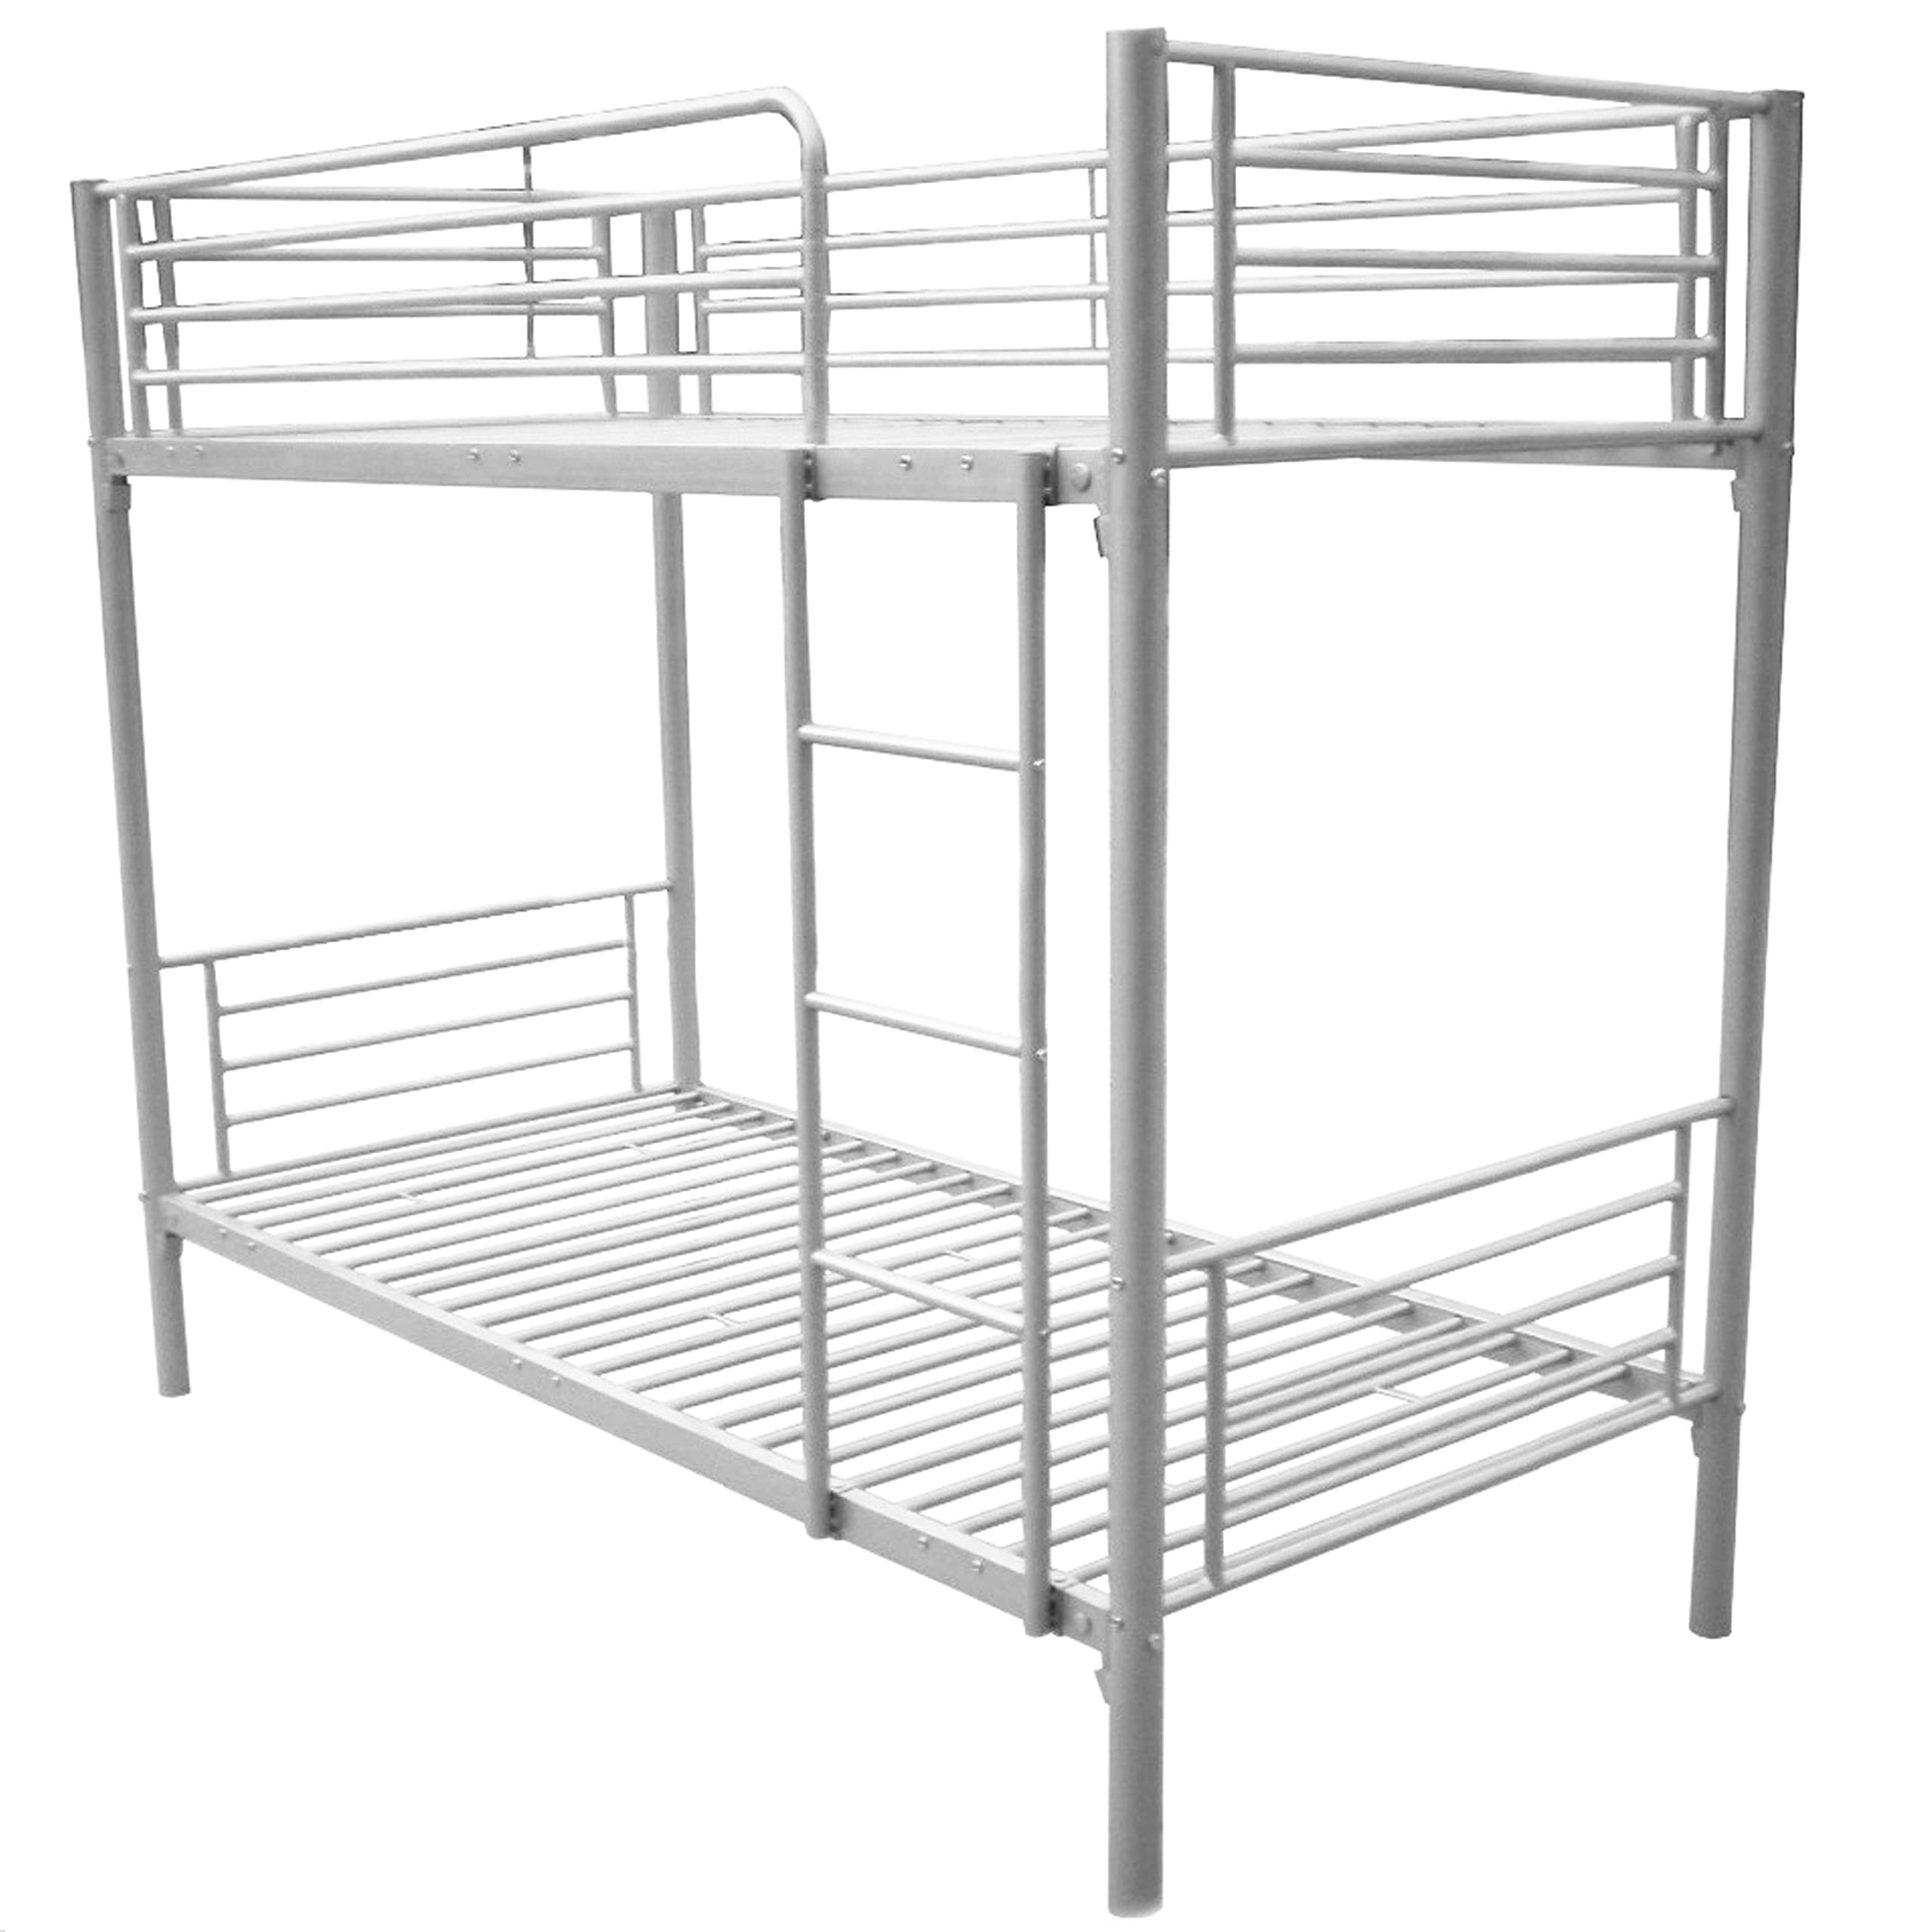 Bunk Bed 100 Cm X 190 Cm Silver Buy Online At Best Price In Uae Amazon Ae